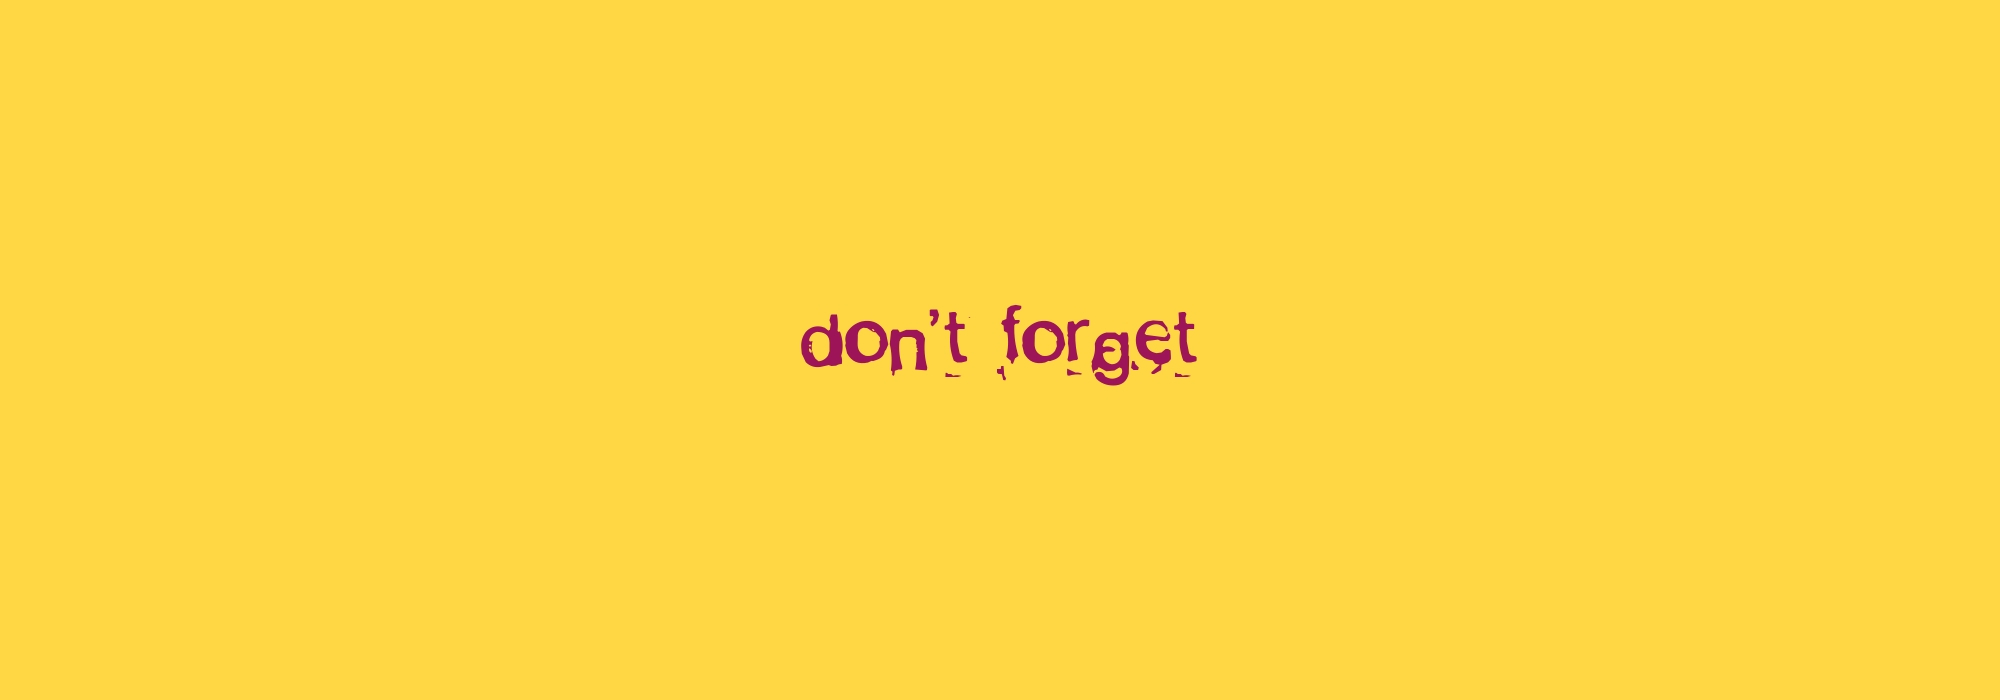 Text Dont forget